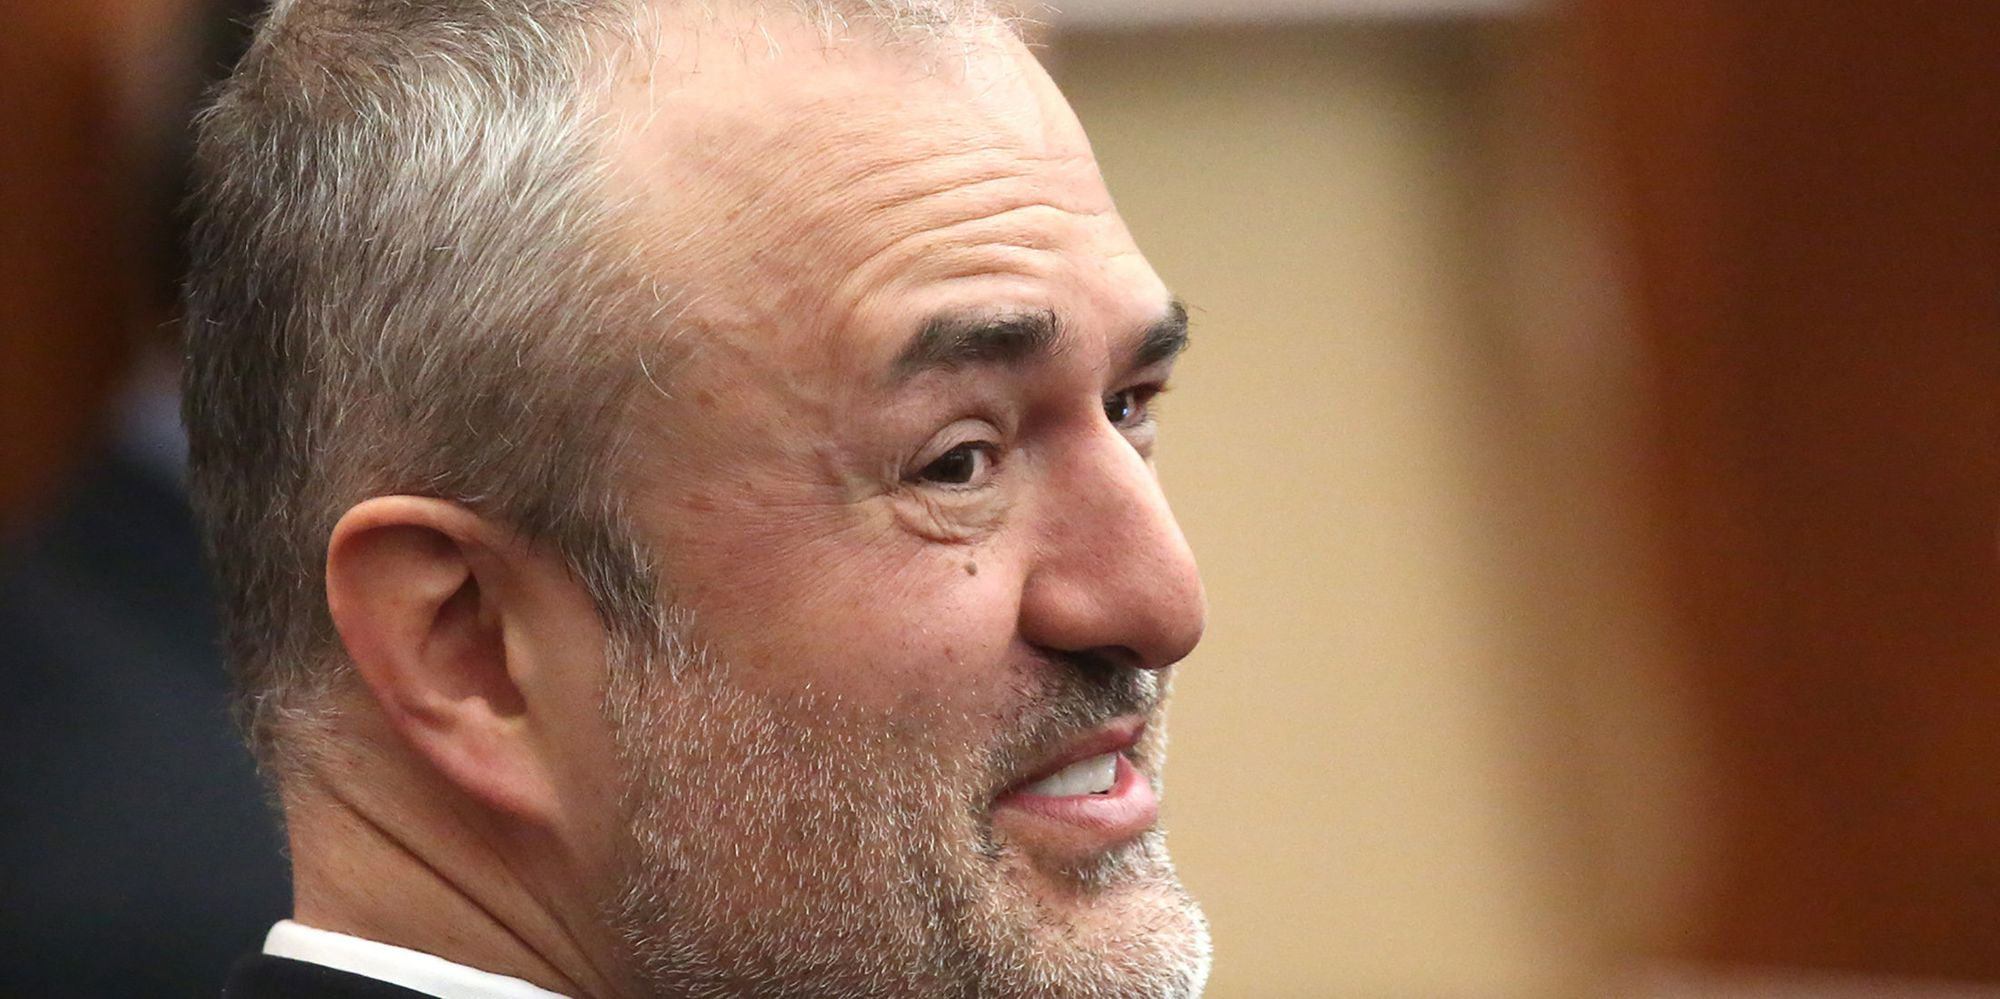 Gawker Media Was Saved, But Gawker.com Is Over